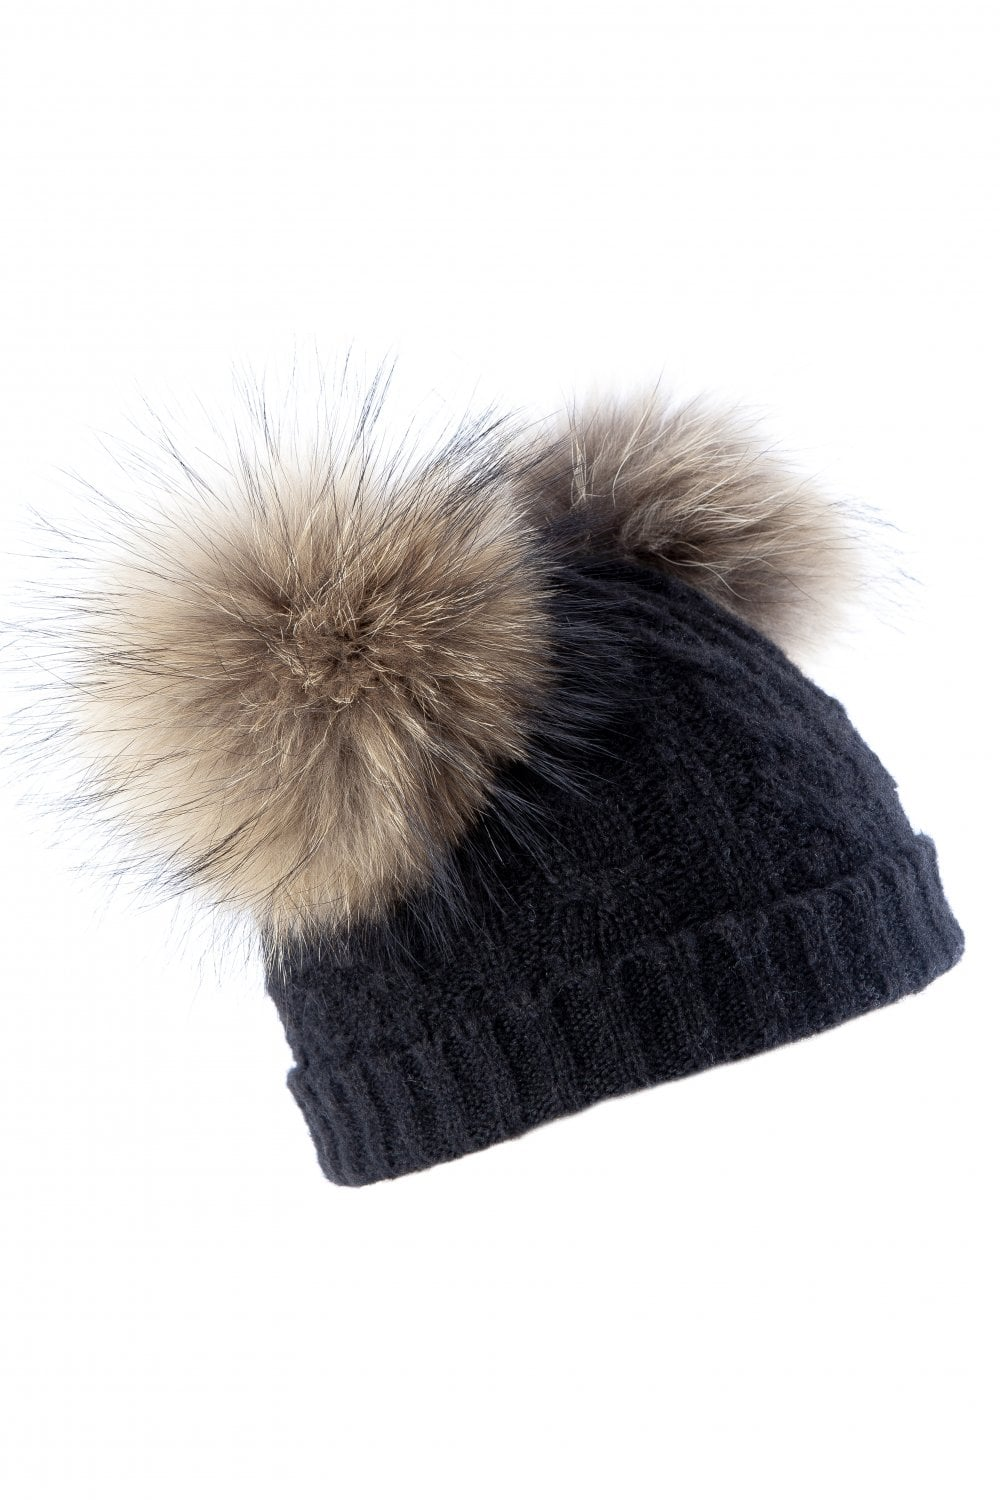 eb3117f9a46 JAYLEY Cashmere Blend Fox Fur Hat - Accessories from JAYLEY UK